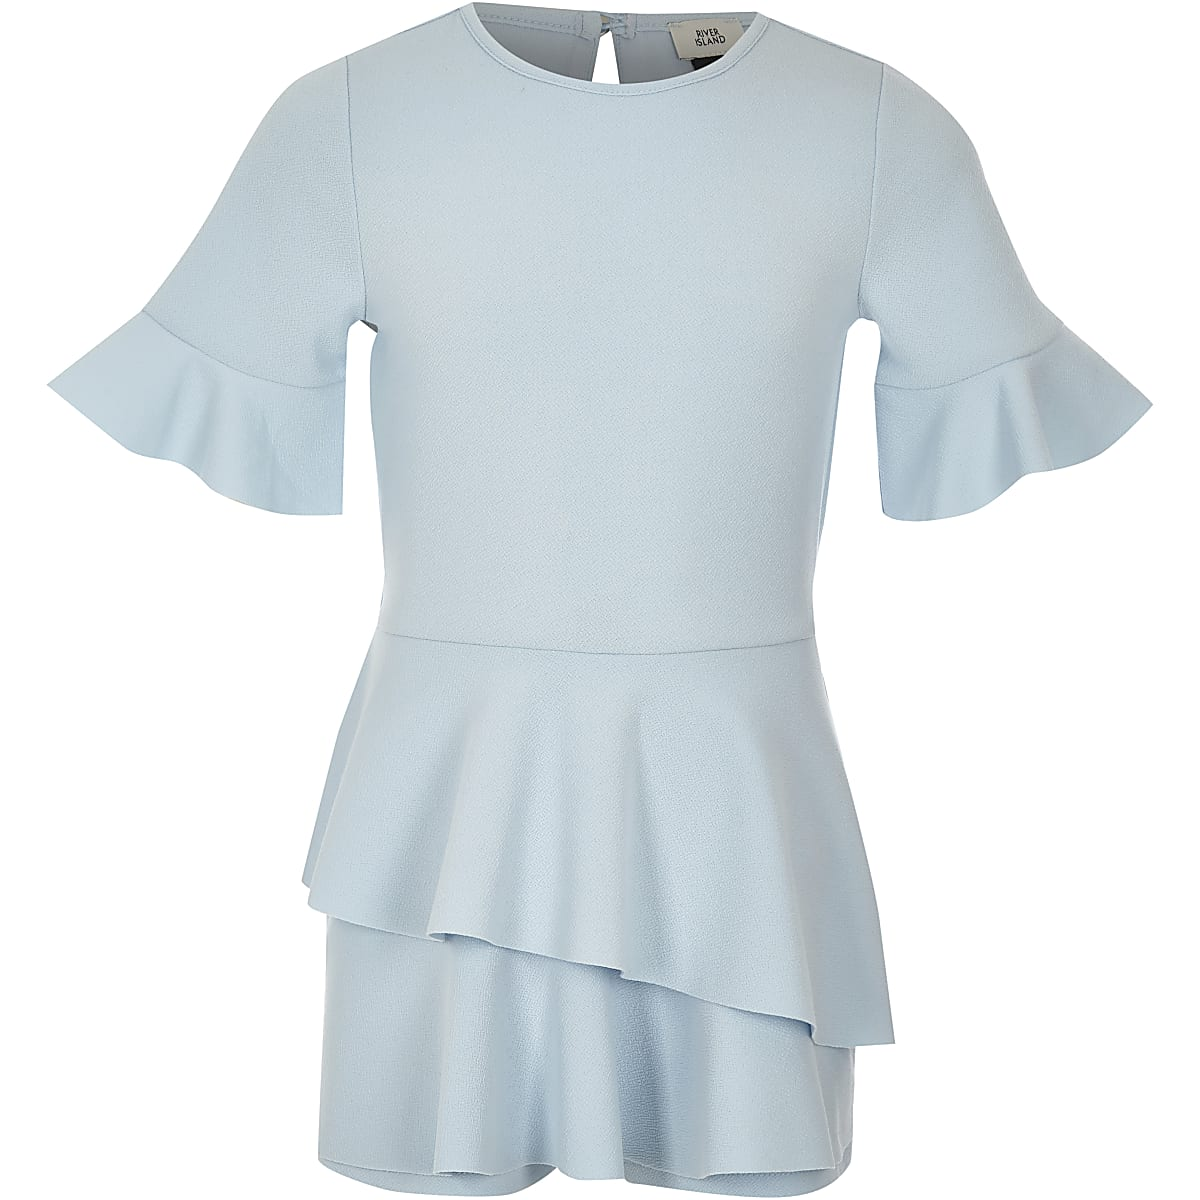 46ac7a0cac Girls light blue short sleeve skort playsuit - Playsuits - Playsuits    Jumpsuits - girls